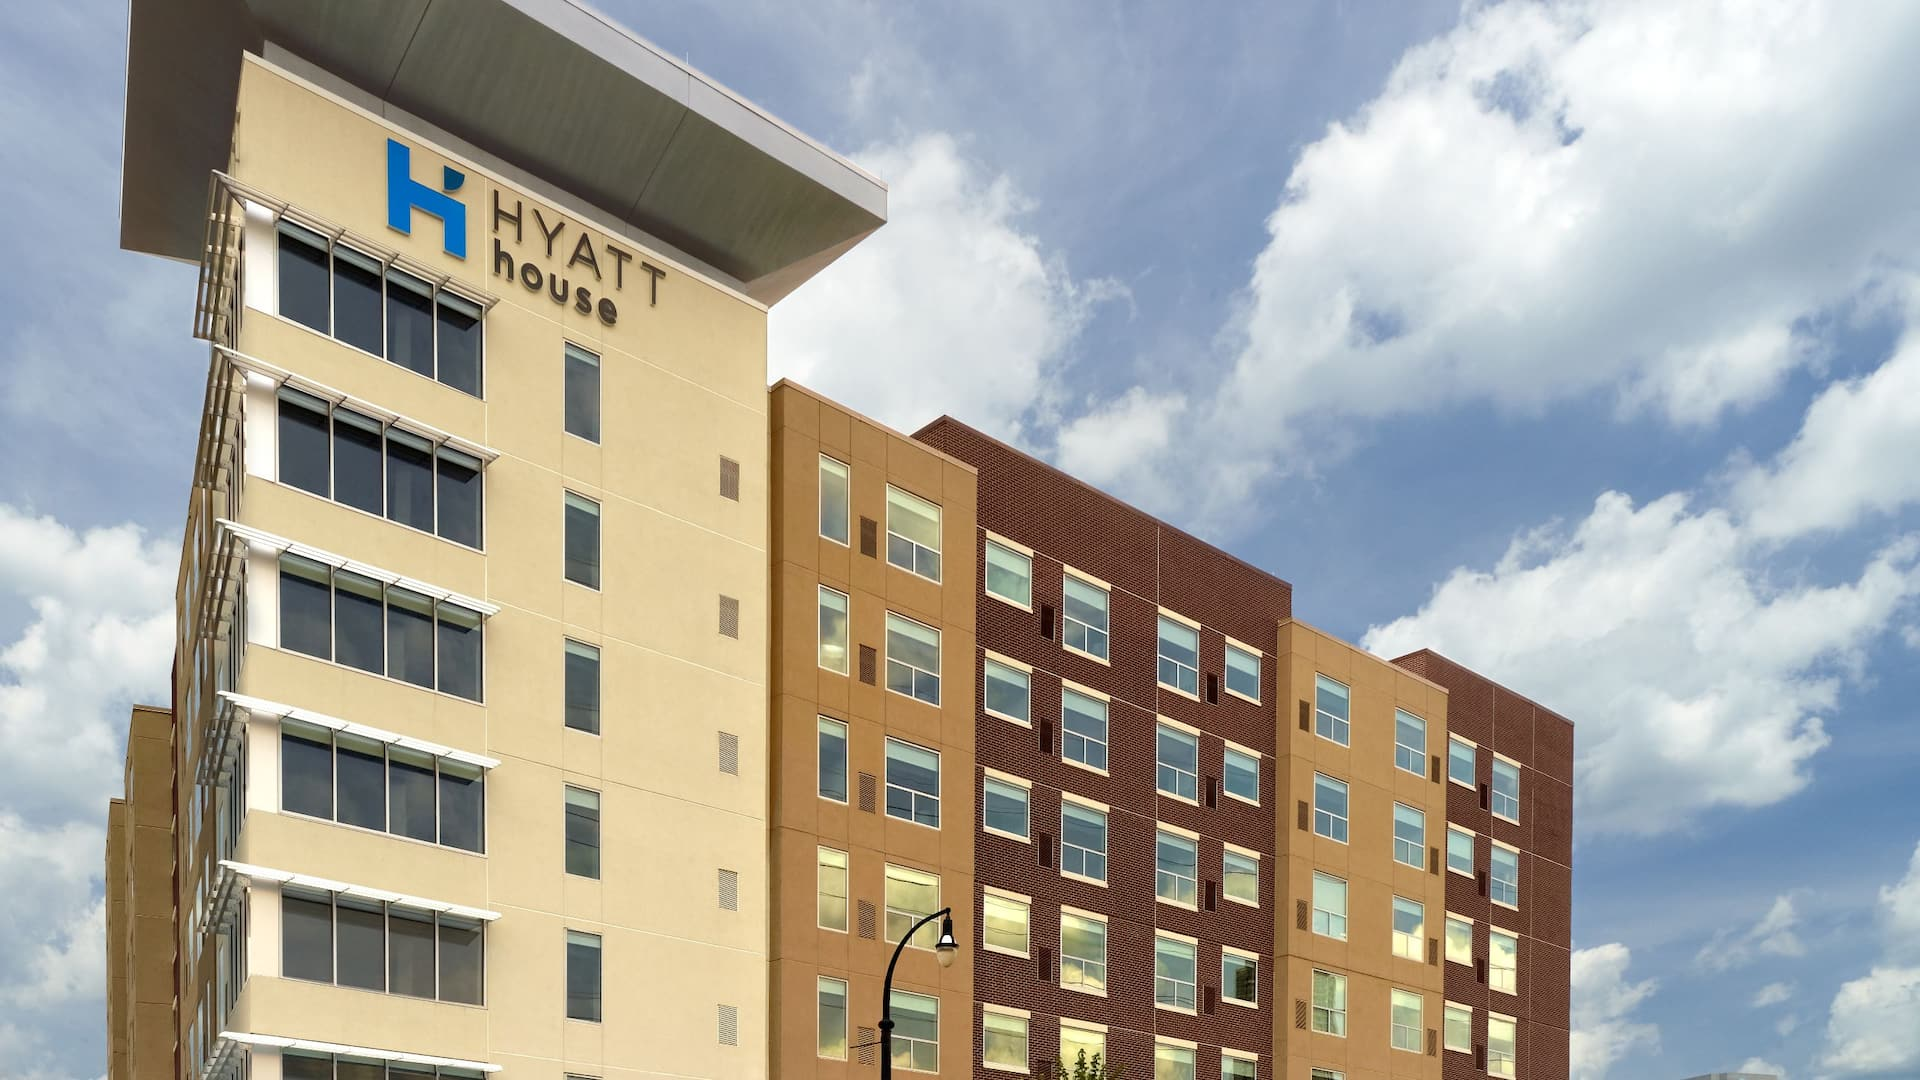 Hyatt House Seattle Exterior